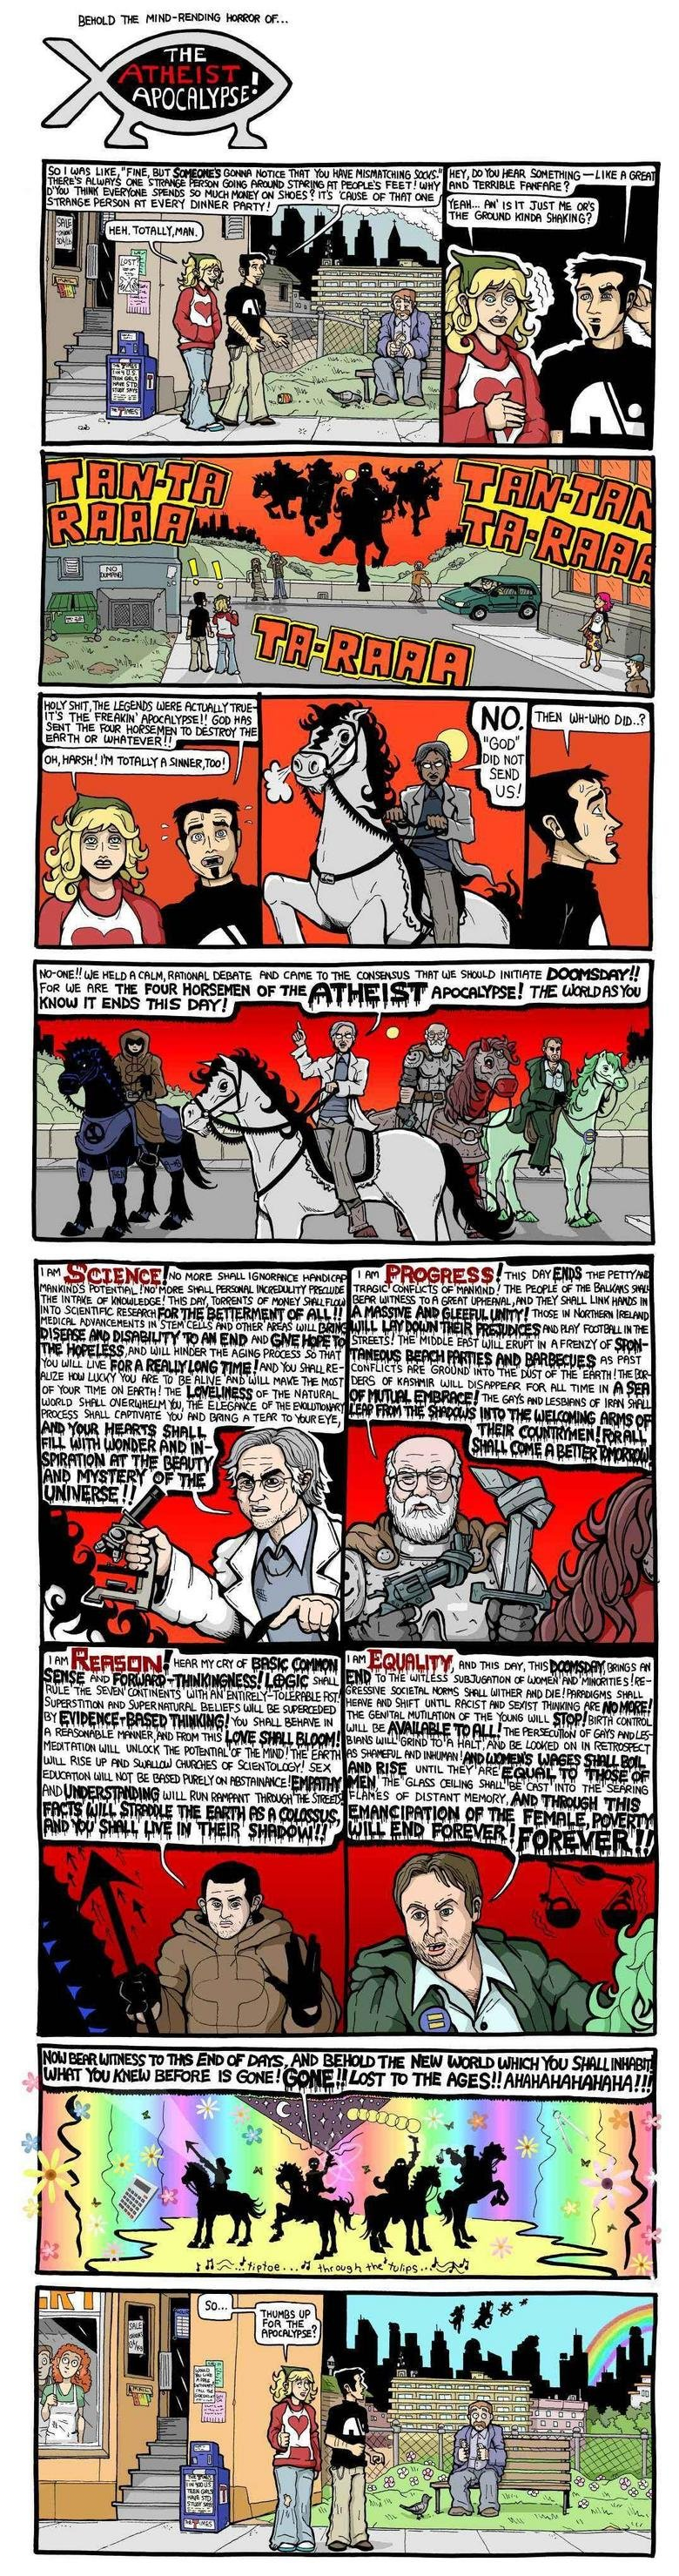 The Atheist Apocalypse. probably a repost. oh well, i lol'd.. oh god so much text